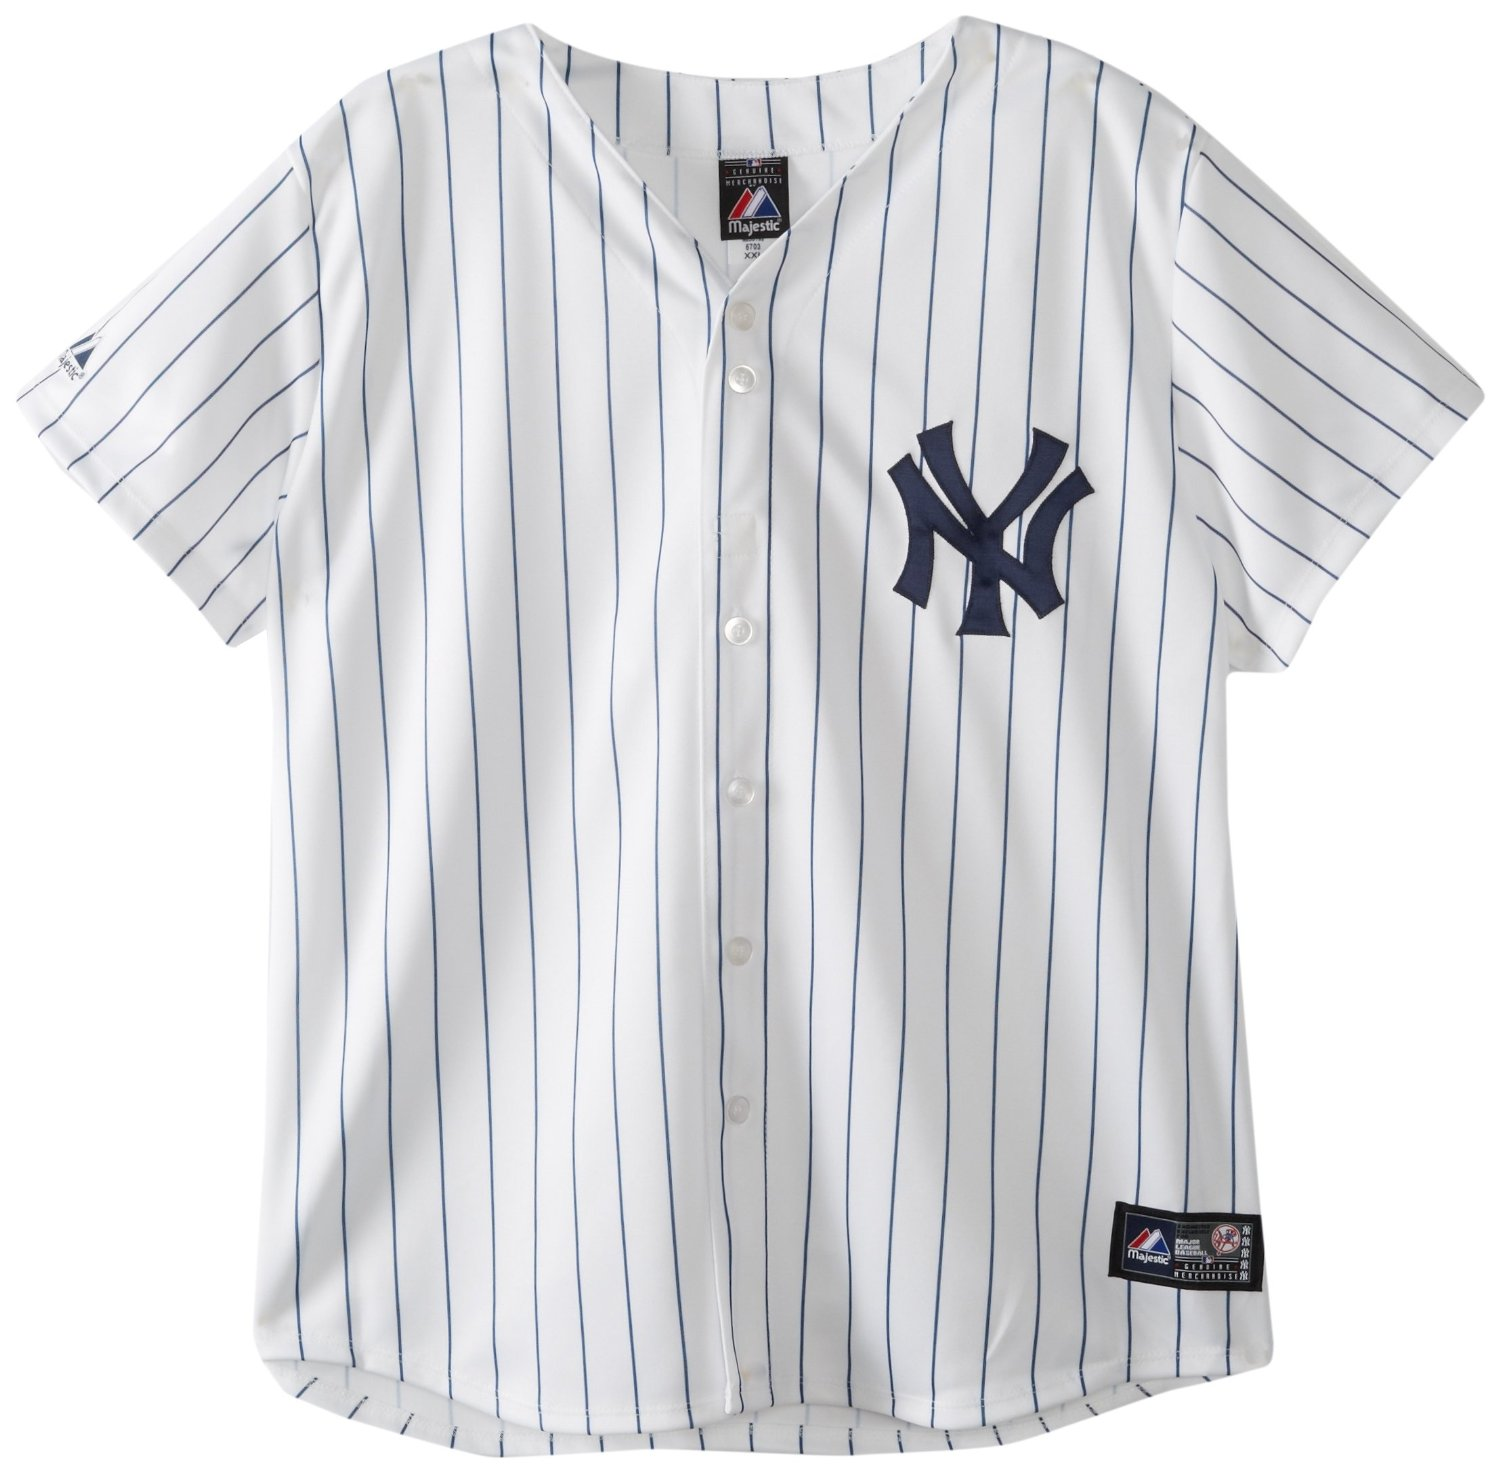 Amazon.com : MLB New York Yankees Home Replica Baseball Women's Jersey, White/Navy : Sports Fan Jerseys : Sports & Outdoors